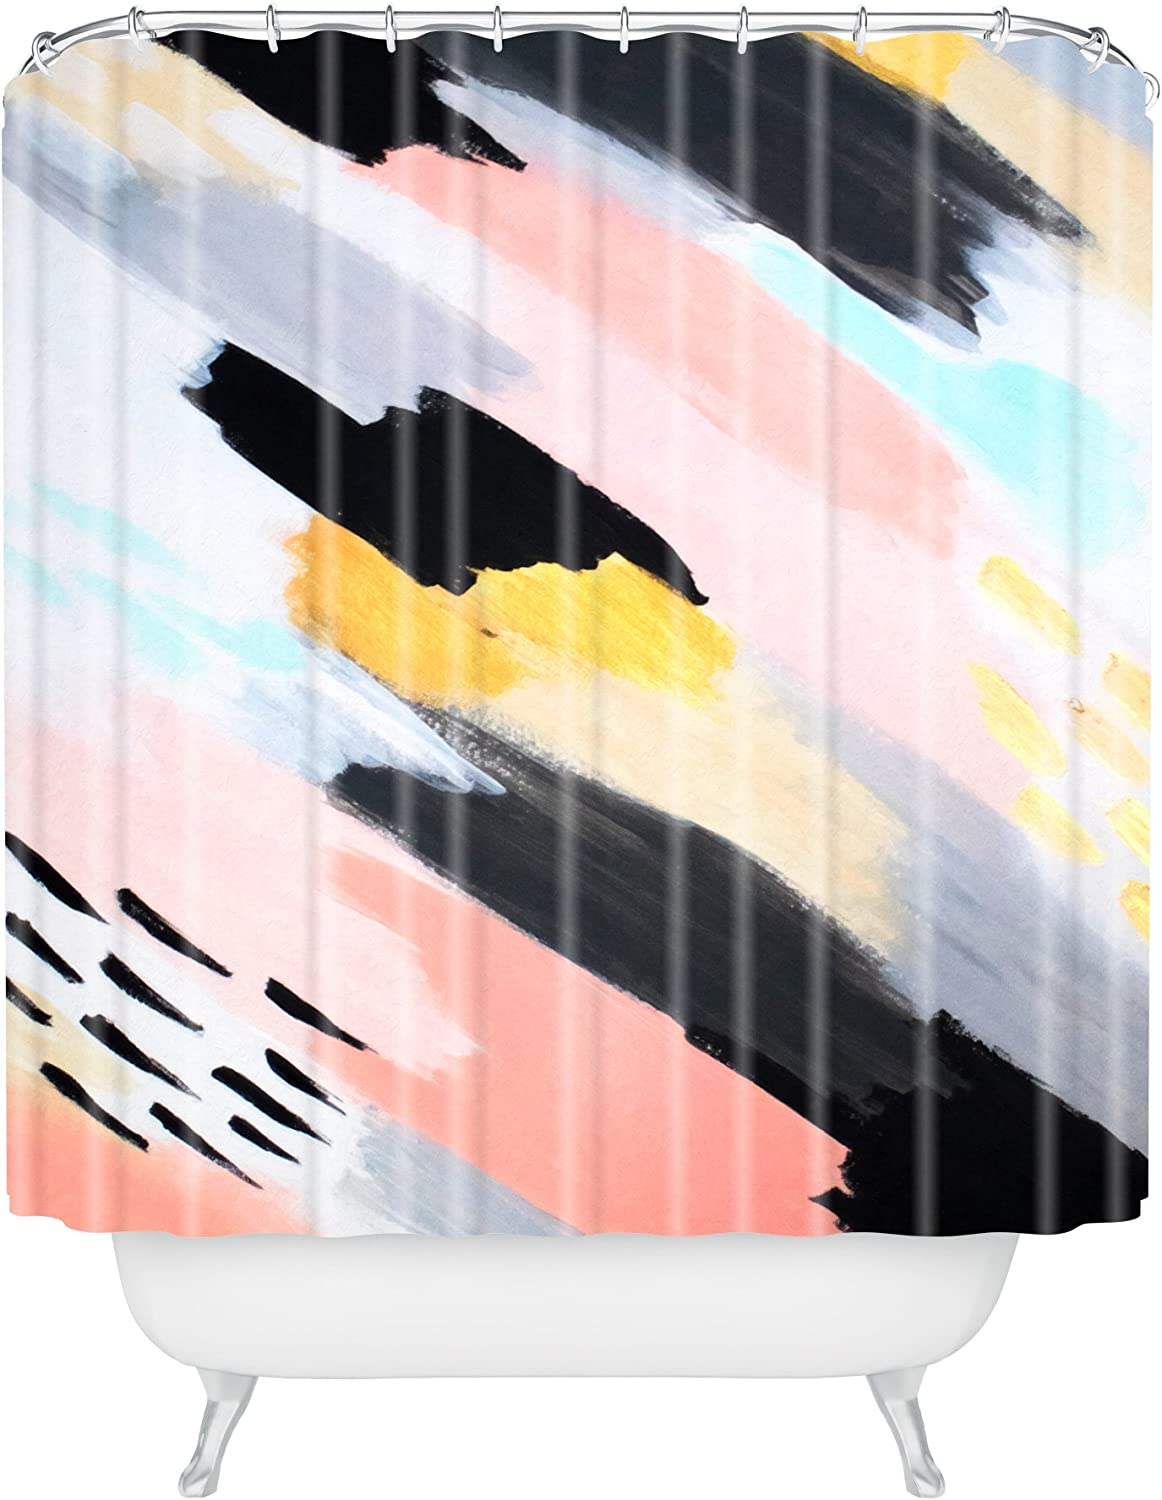 Deny Designs Laura Fedorowicz One Way Shower Curtain 69 X 72 Home Kitchen